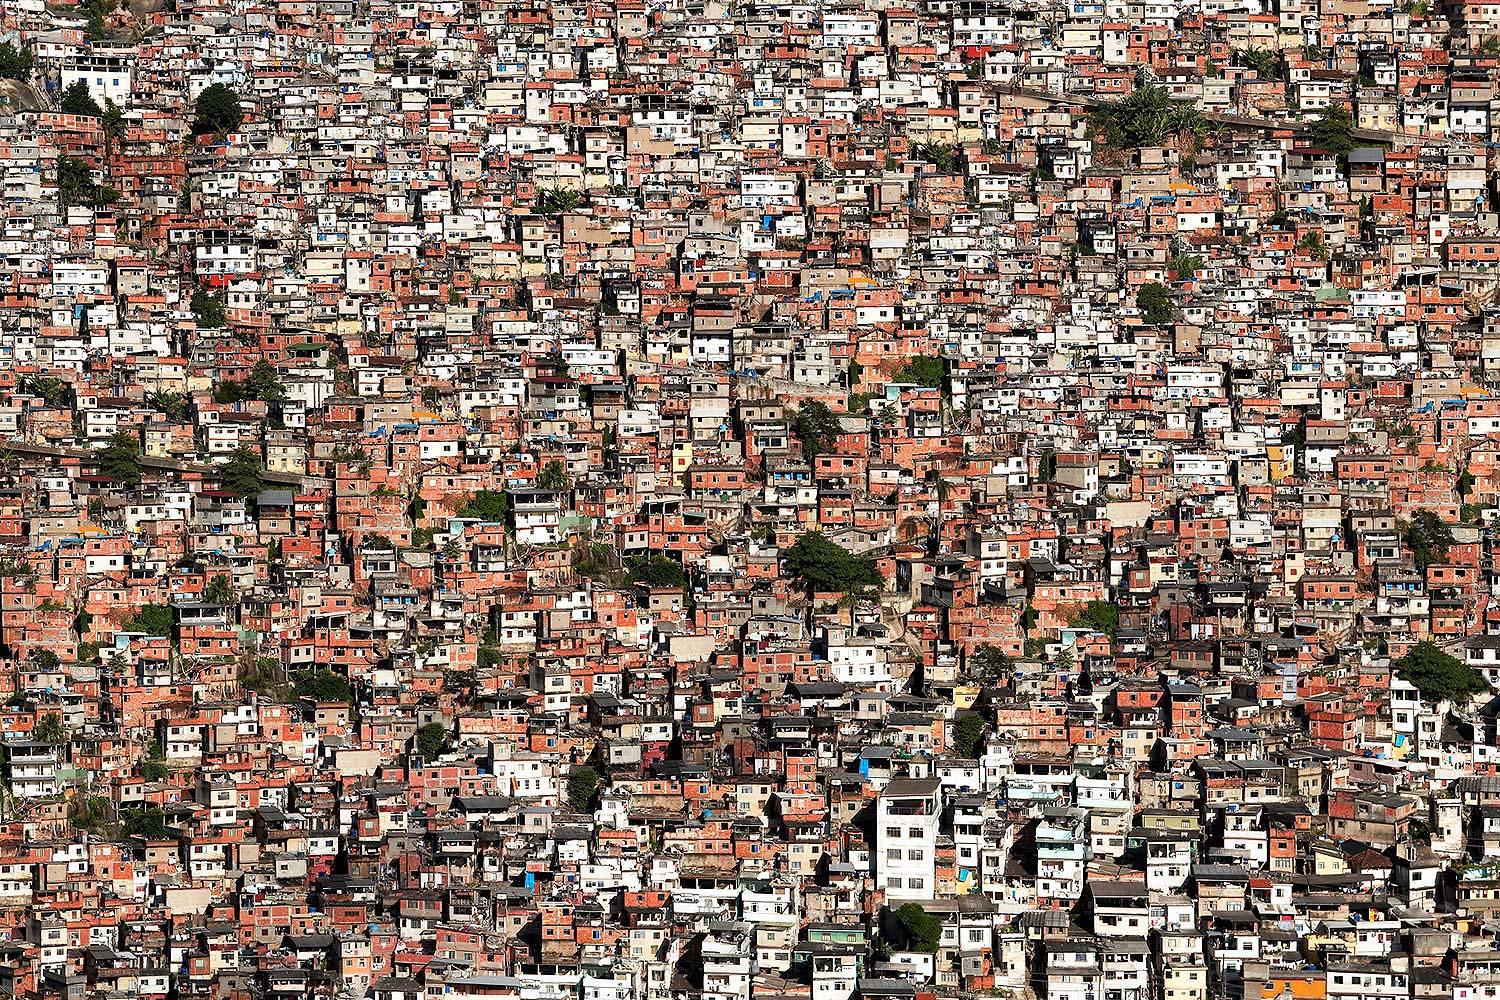 marcus lyon blog archive bric i santa teresa rio de janeiro 2008. Black Bedroom Furniture Sets. Home Design Ideas